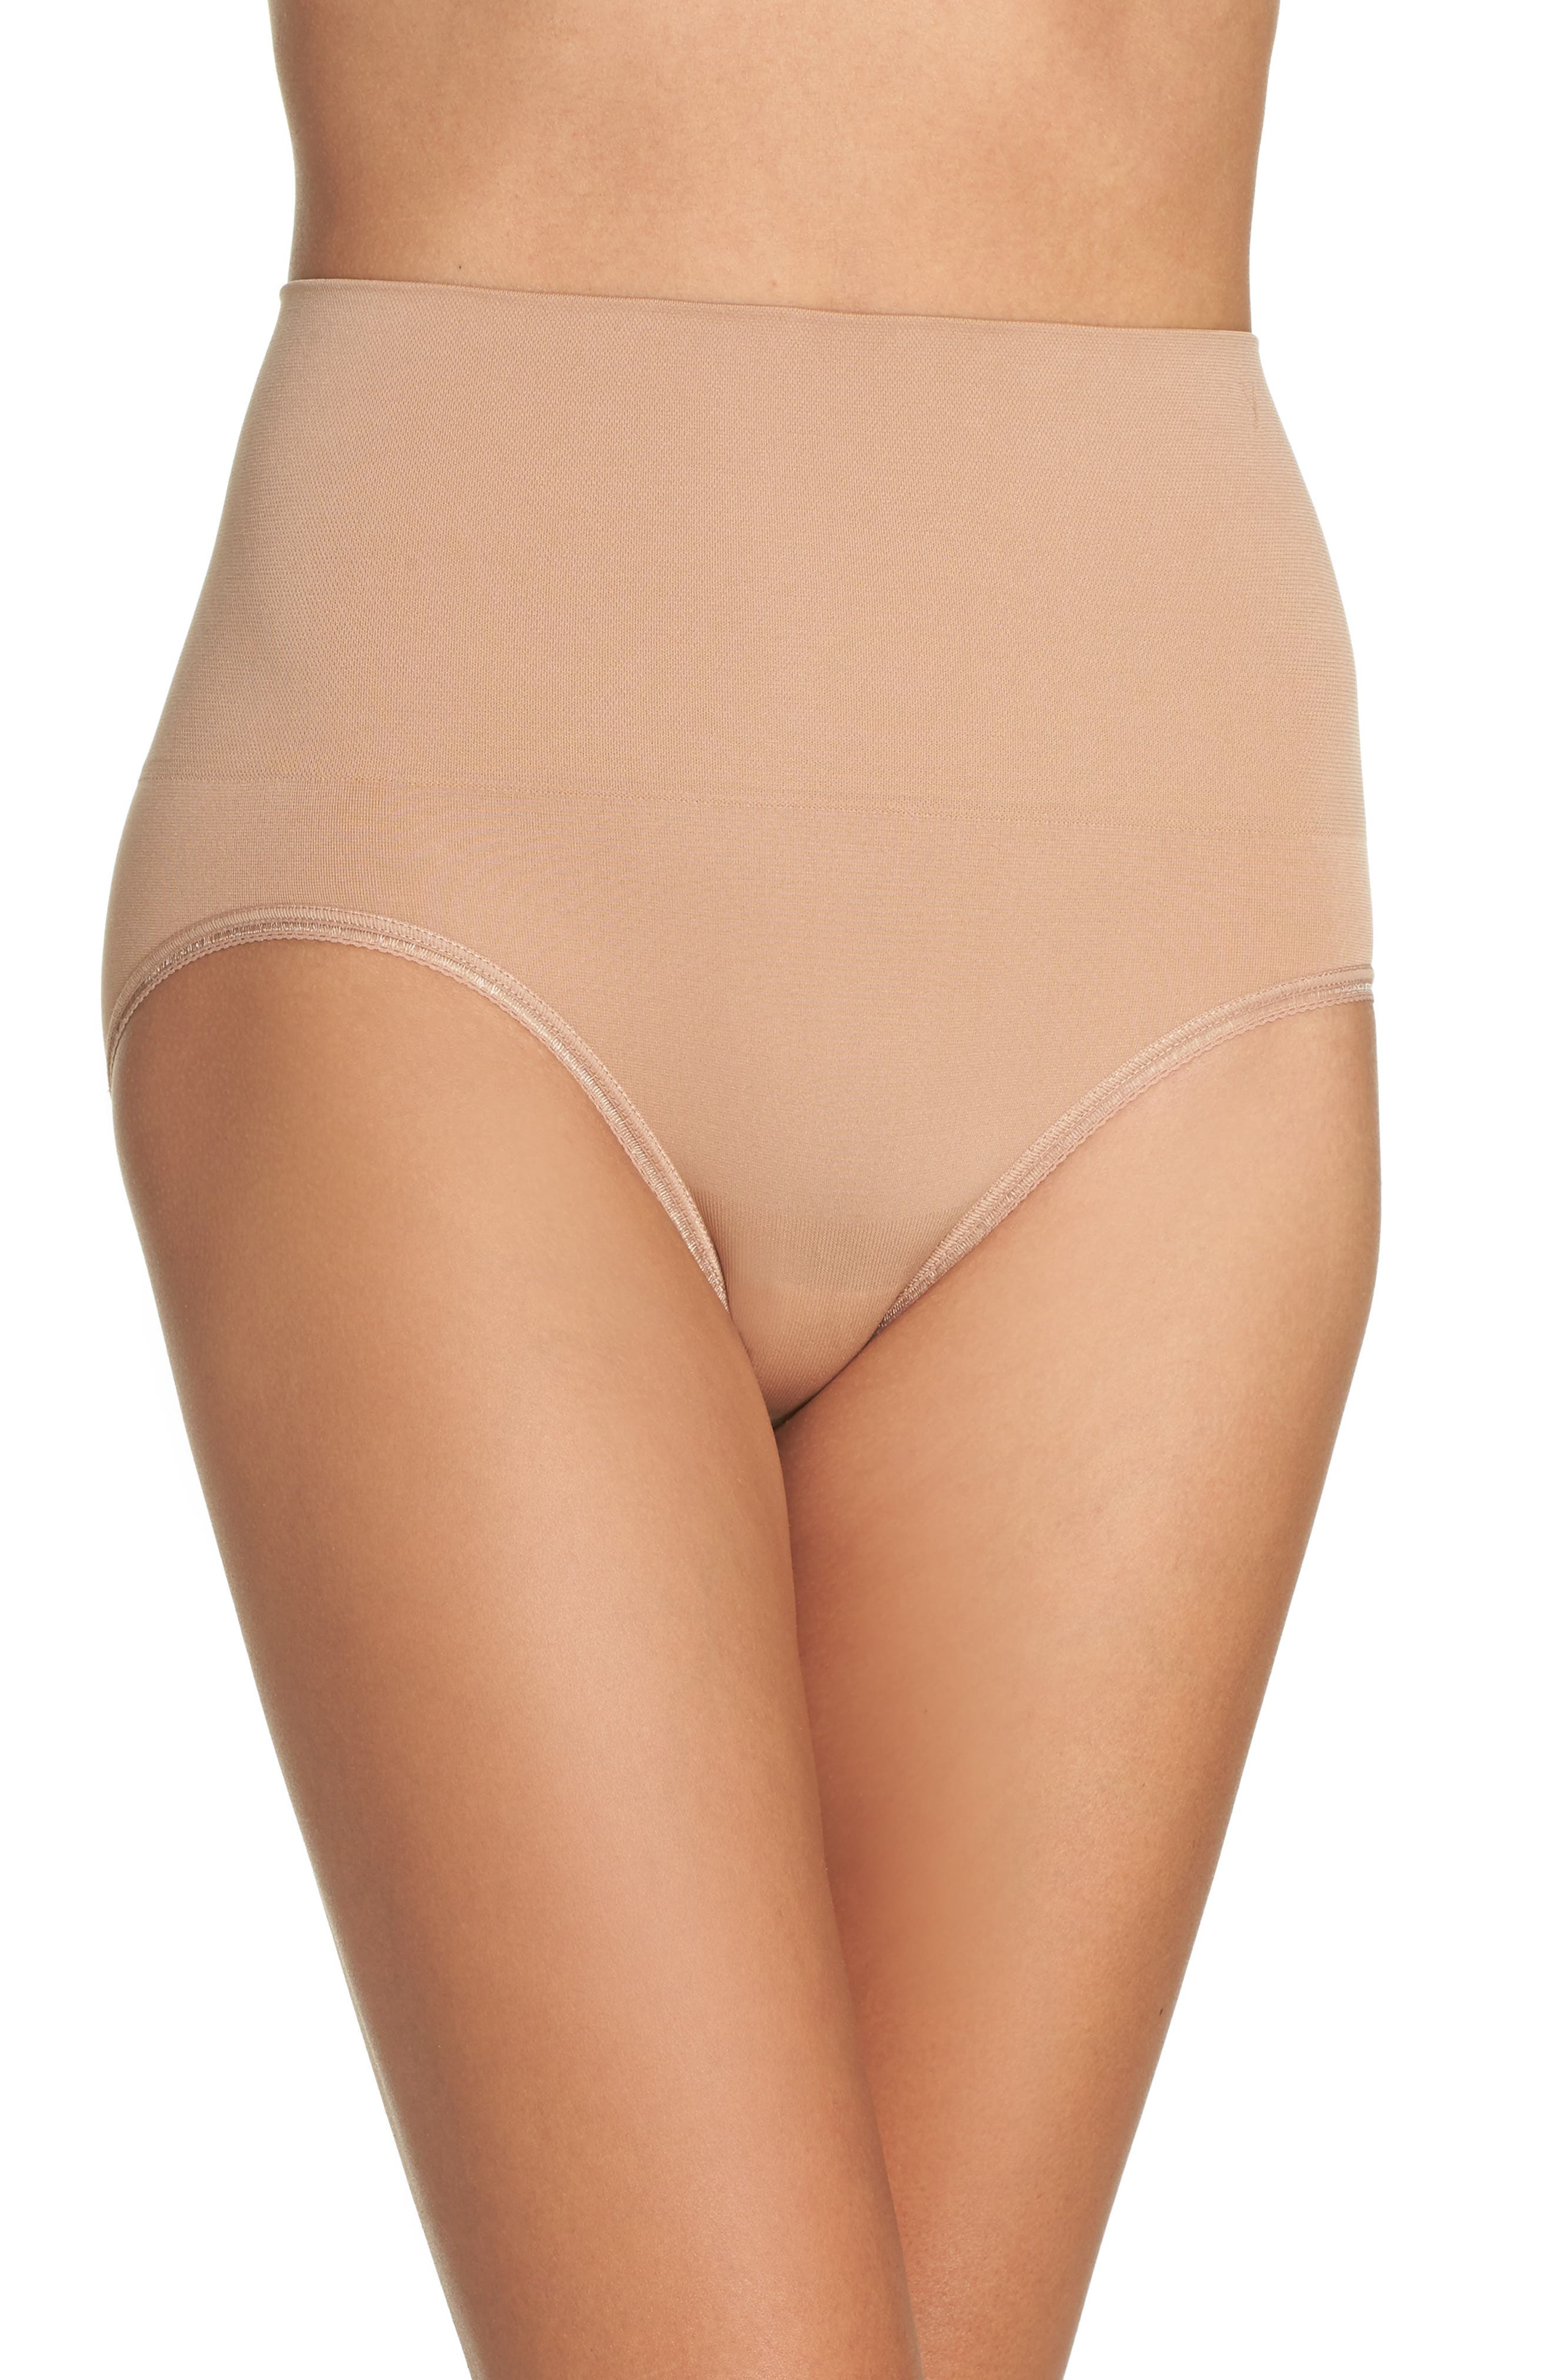 Ultralight Seamless Shaping Briefs,                         Main,                         color, Almond